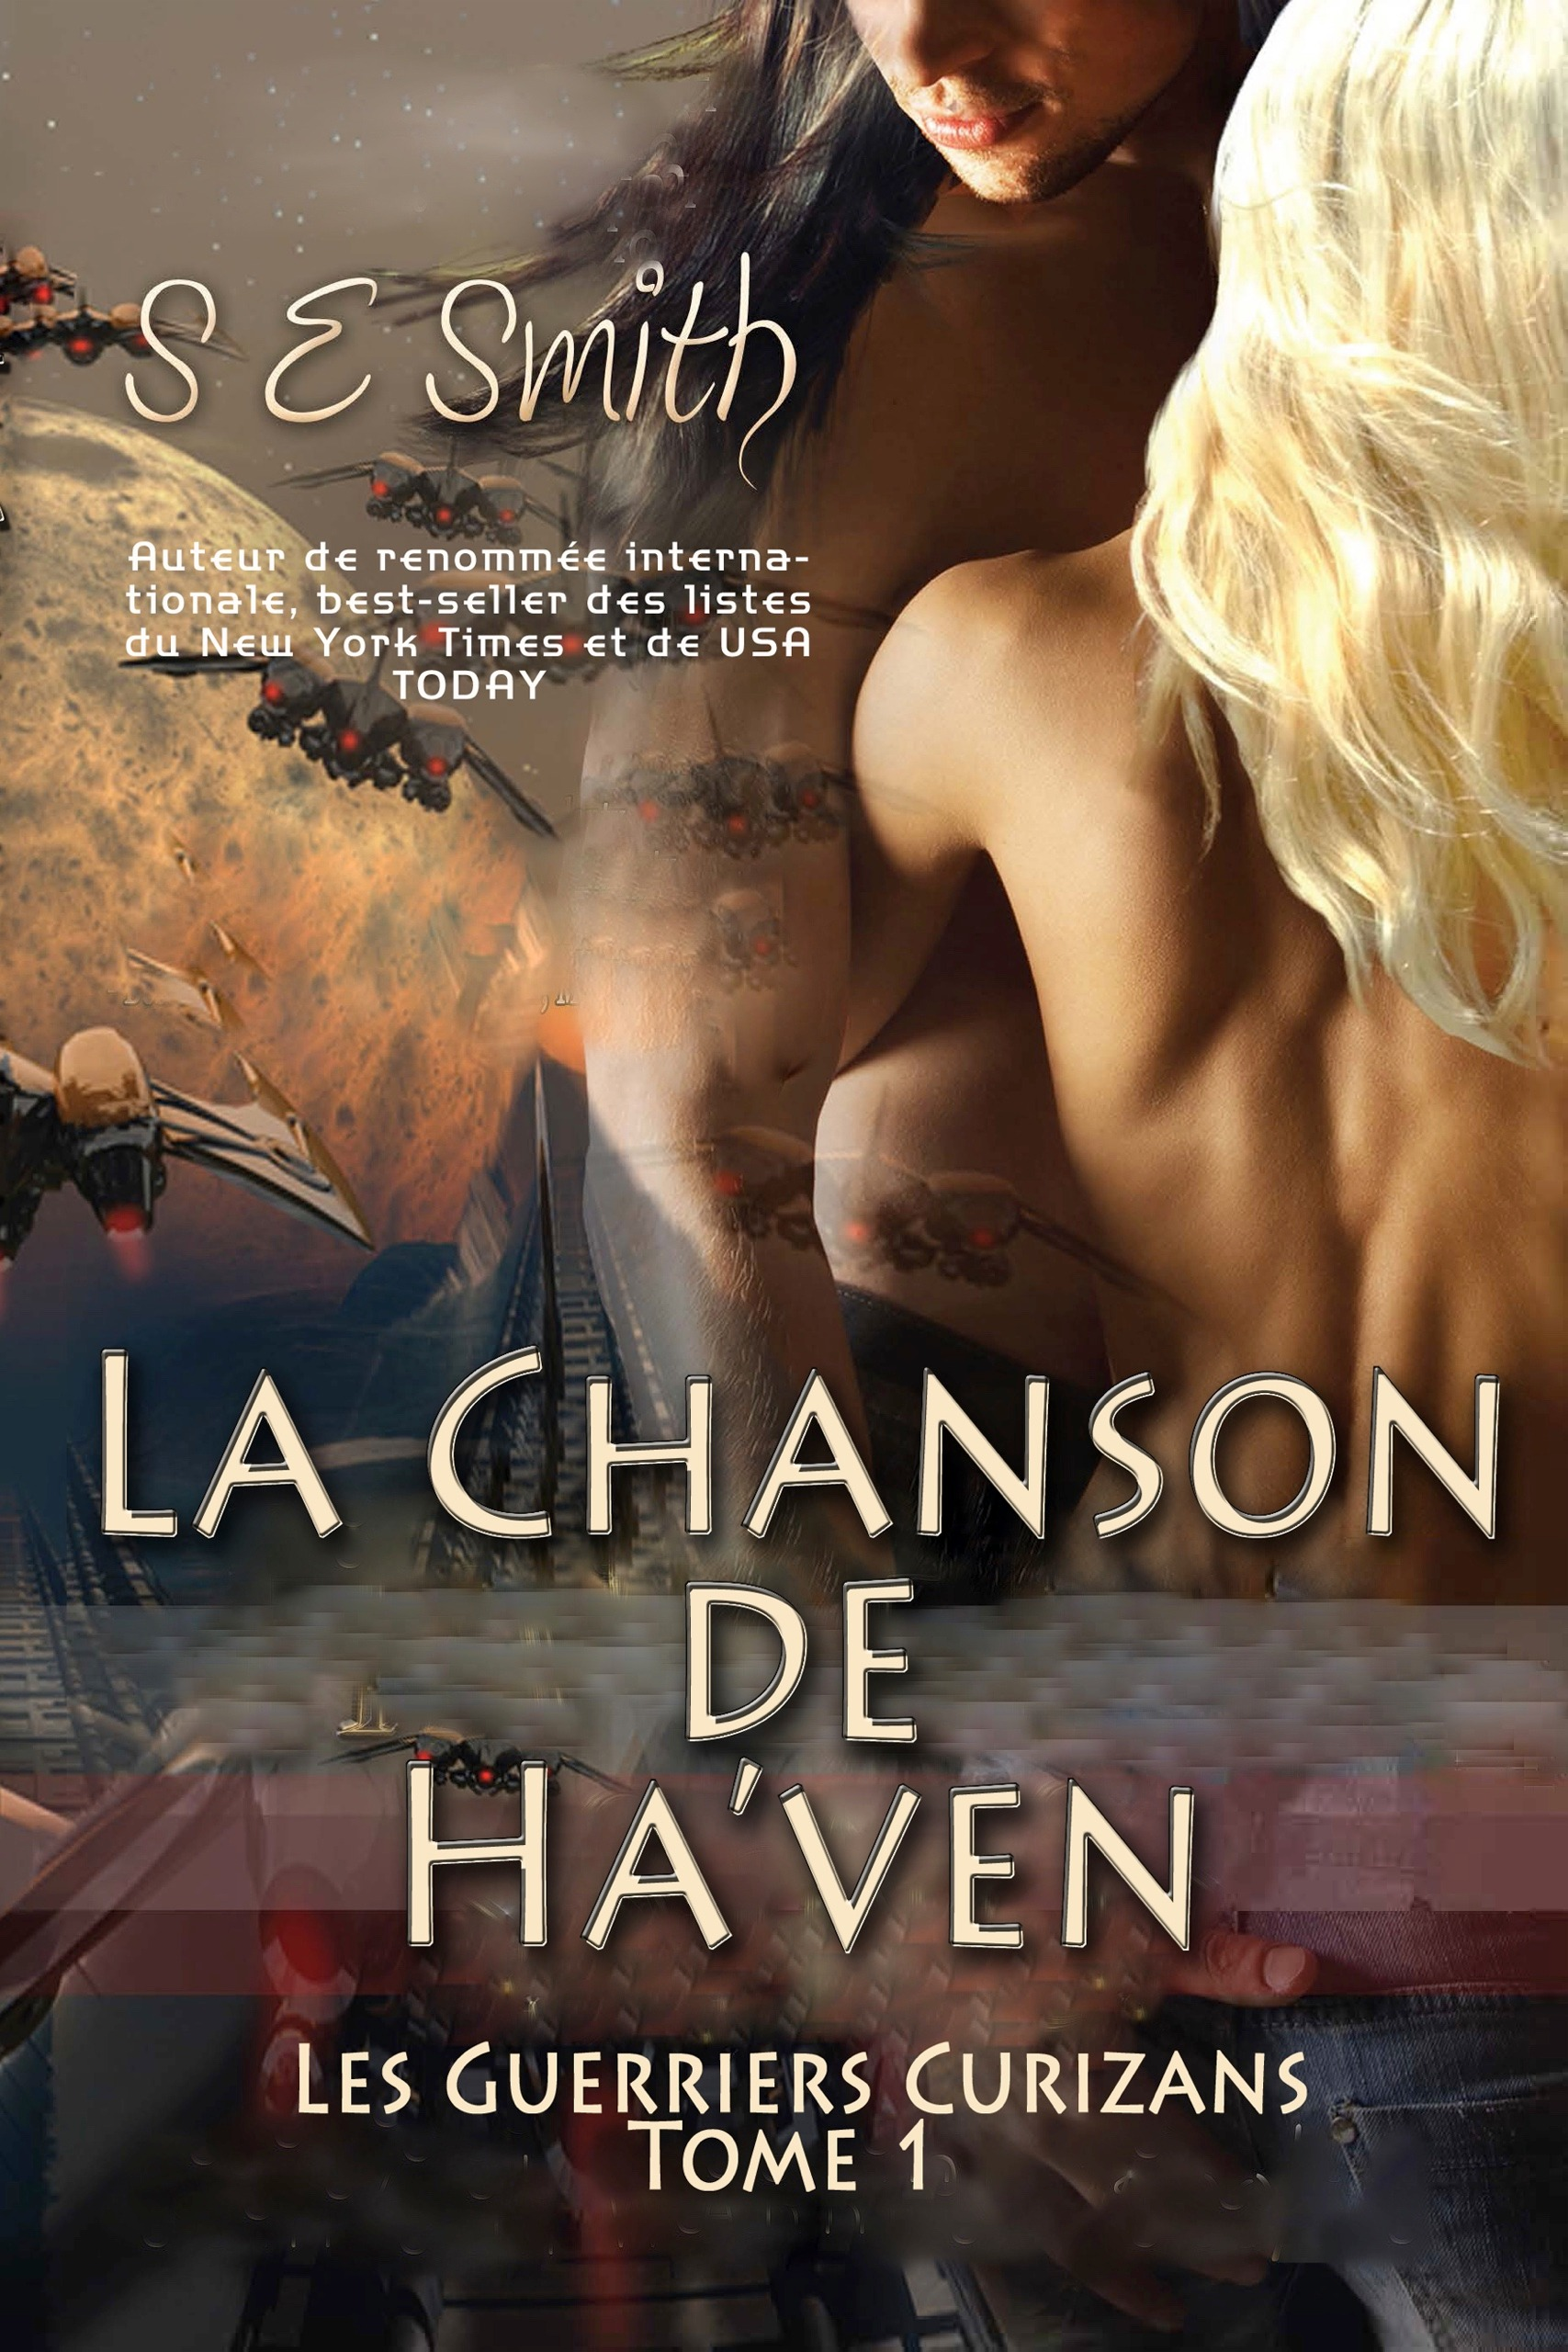 La Chanson de Ha'ven: Les Guerriers Curizans Tome 1 (ebook: Kindle et epub)